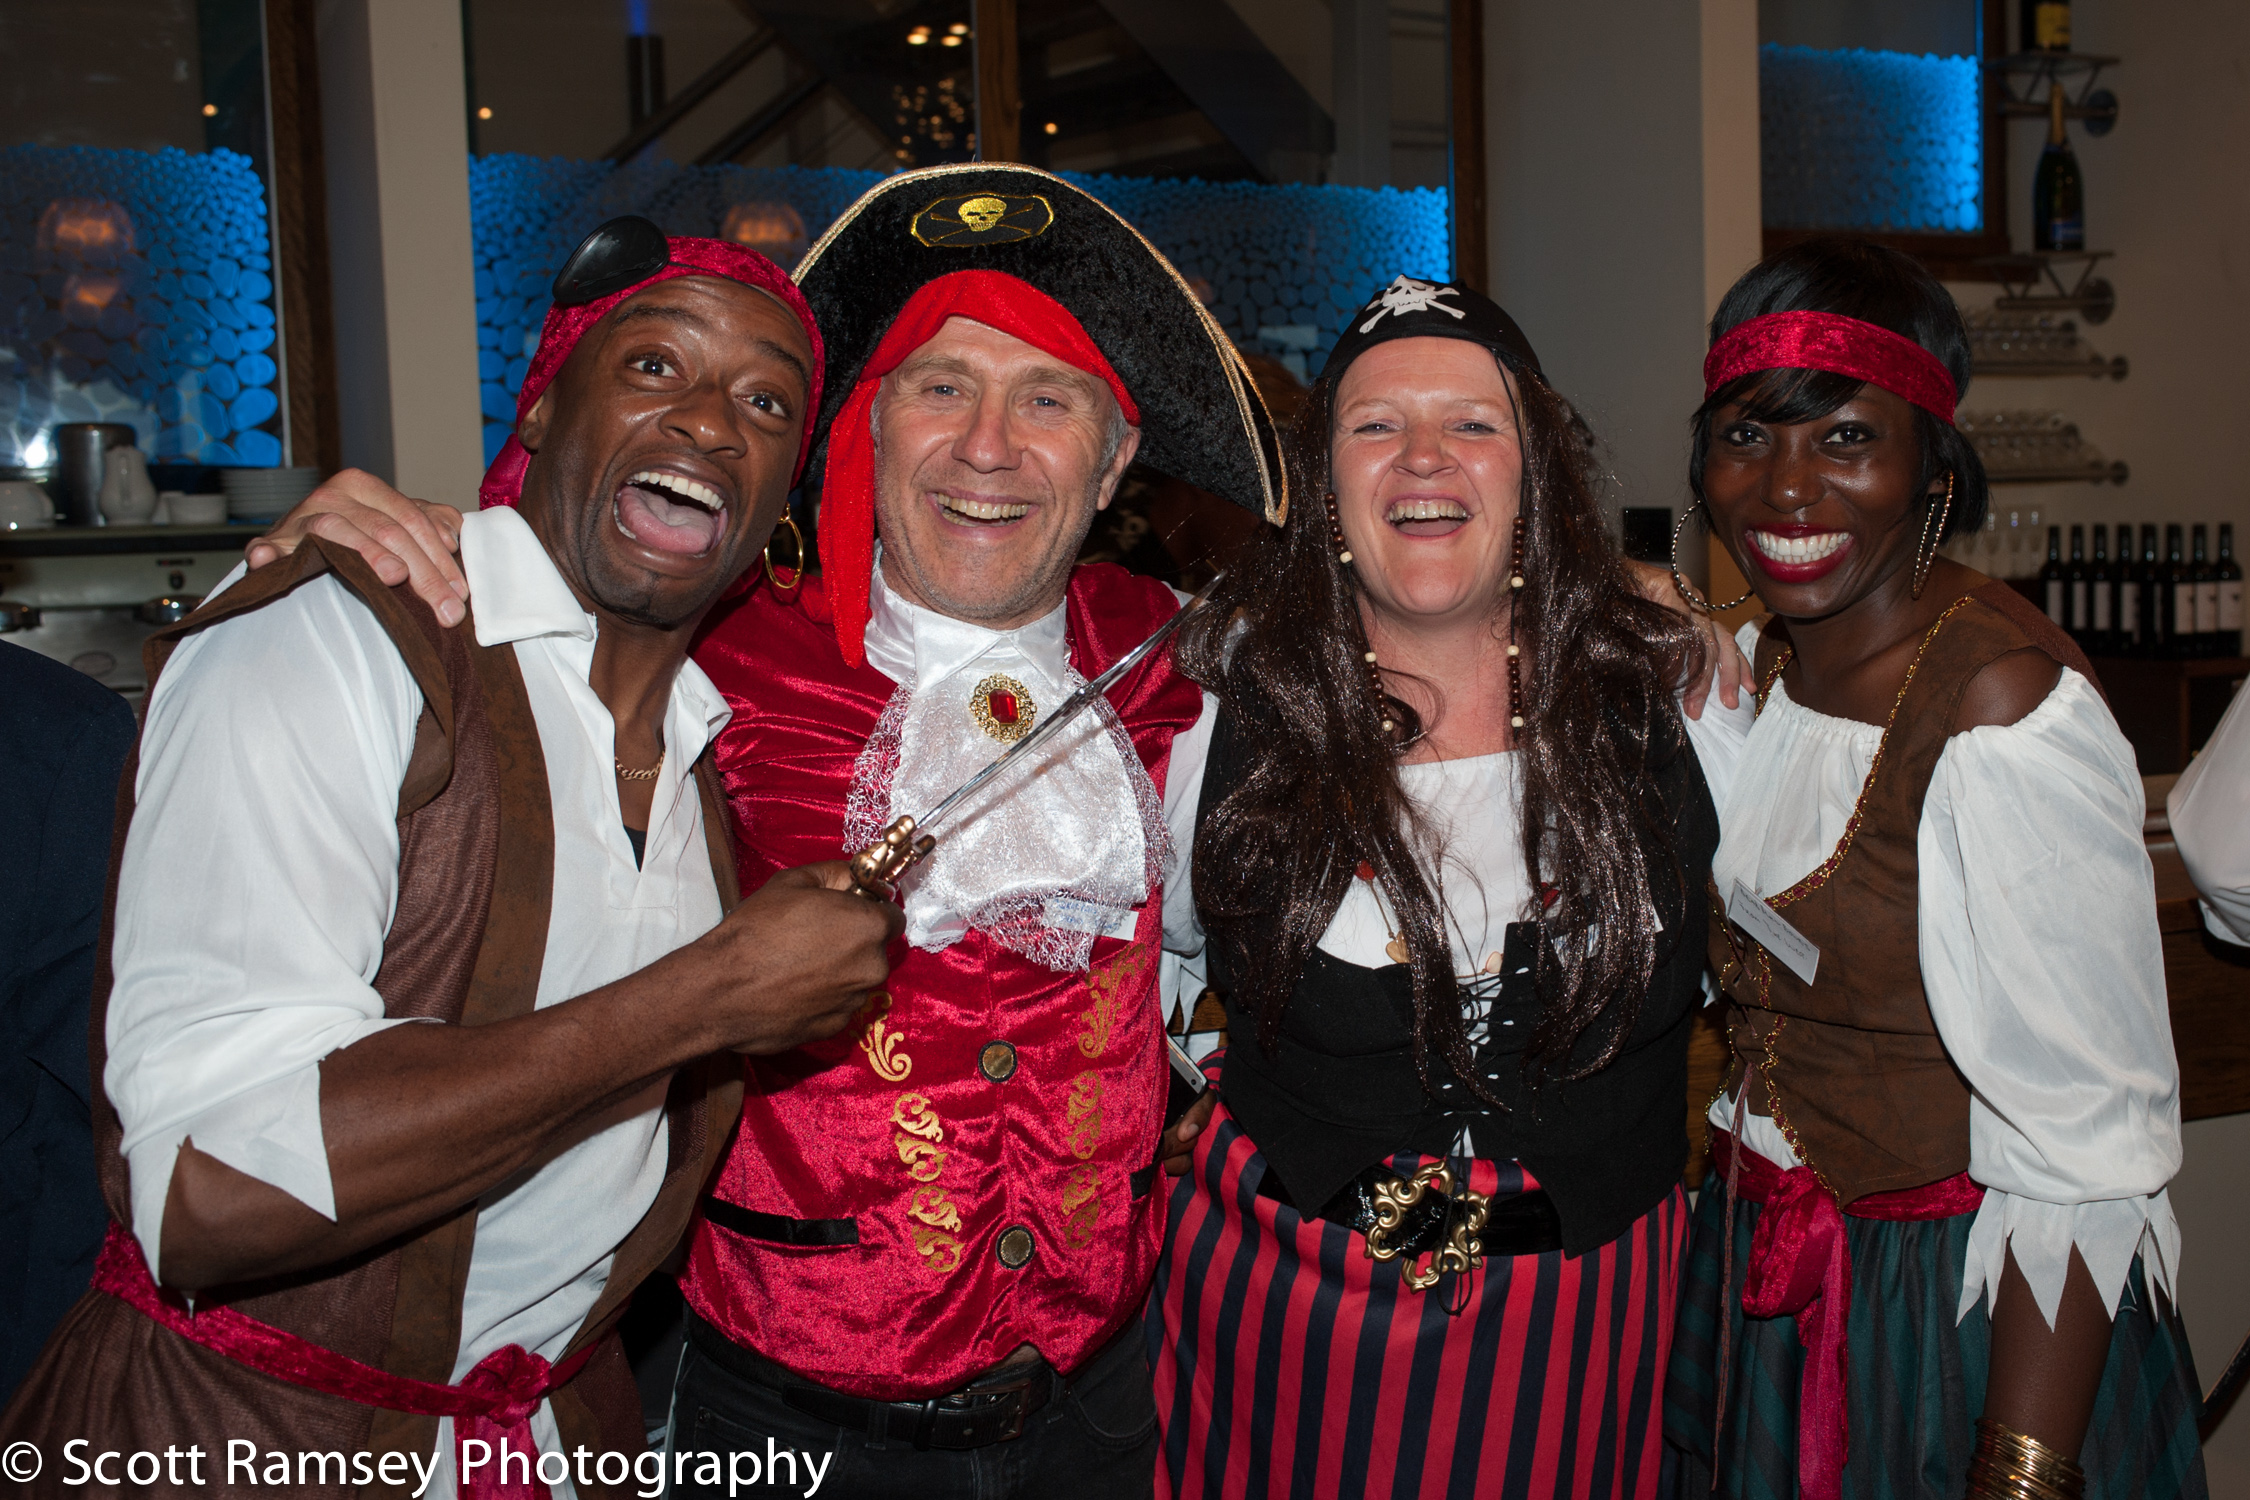 Brighton-Wedding-Photography-Pirate-Theme-Fun-Guests-Group-Photo